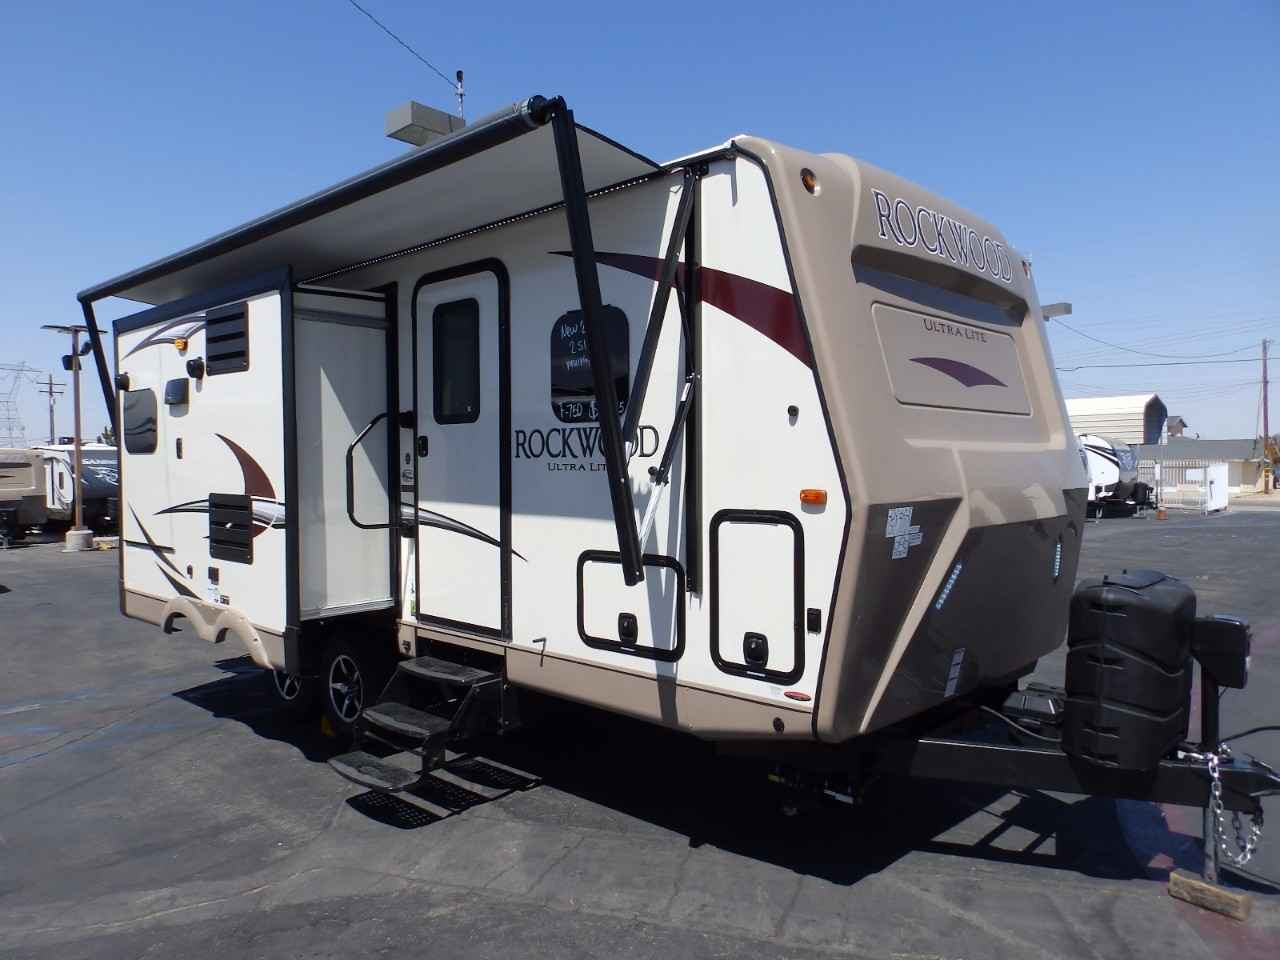 2018 New Forest River Rockwood 2304ds 2 Slides Power